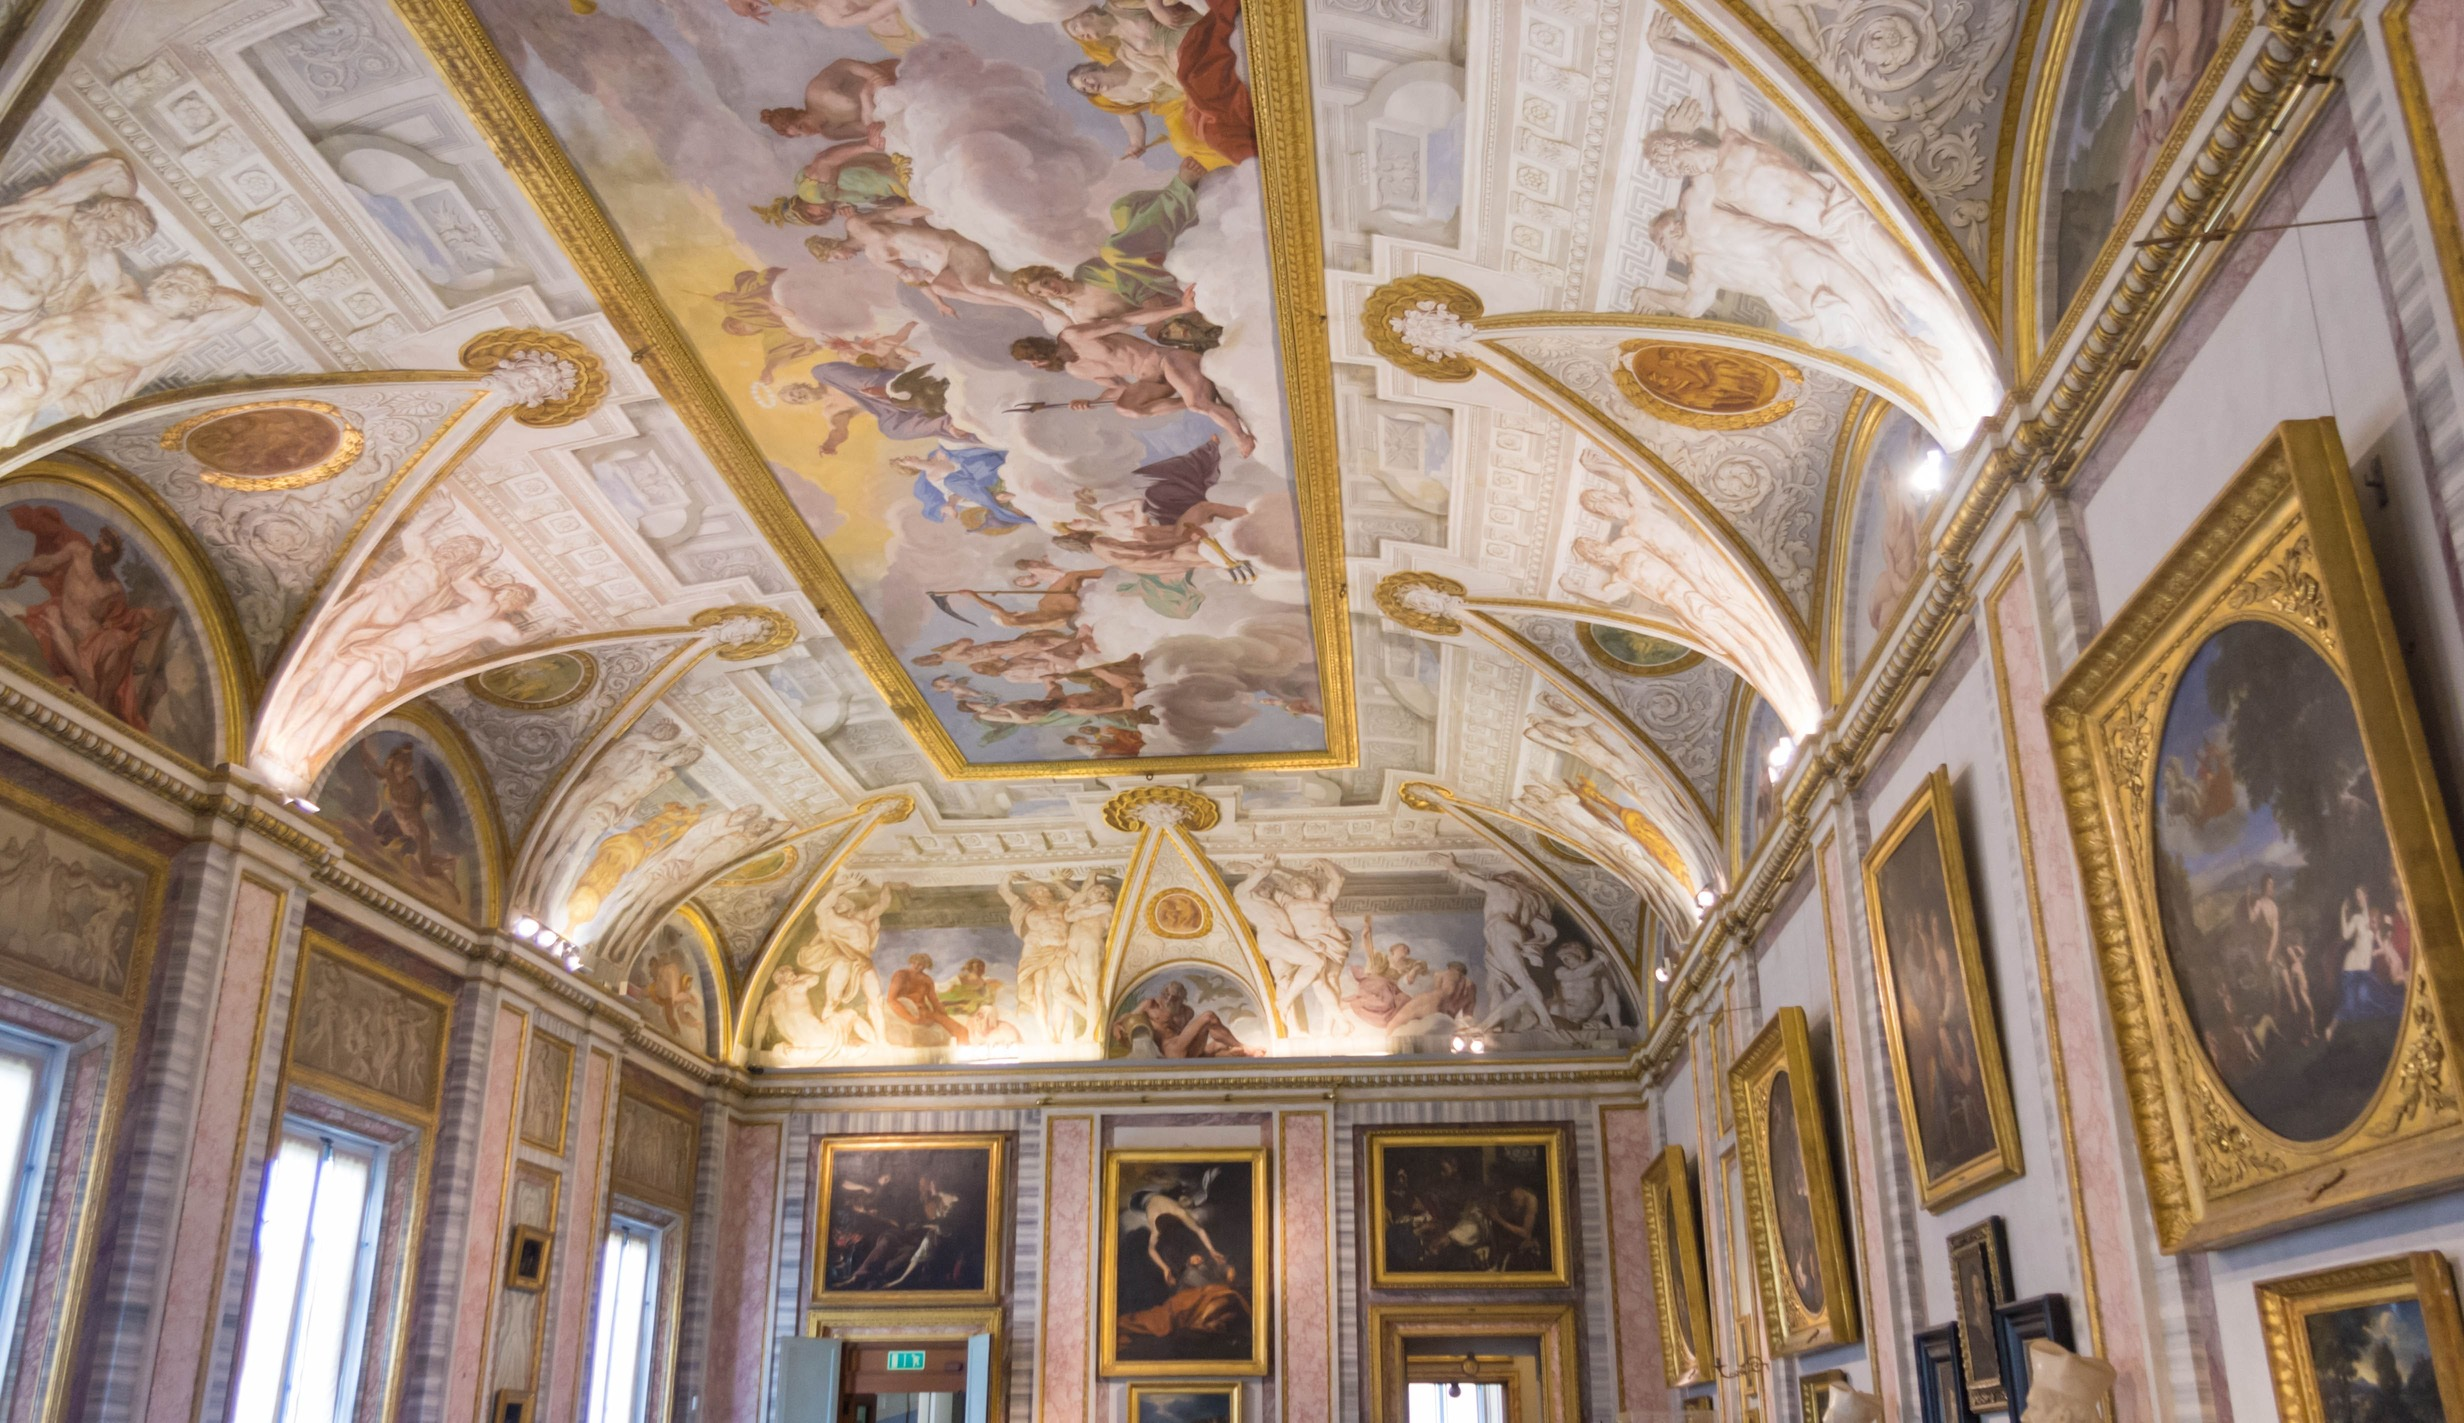 The Italian Museums